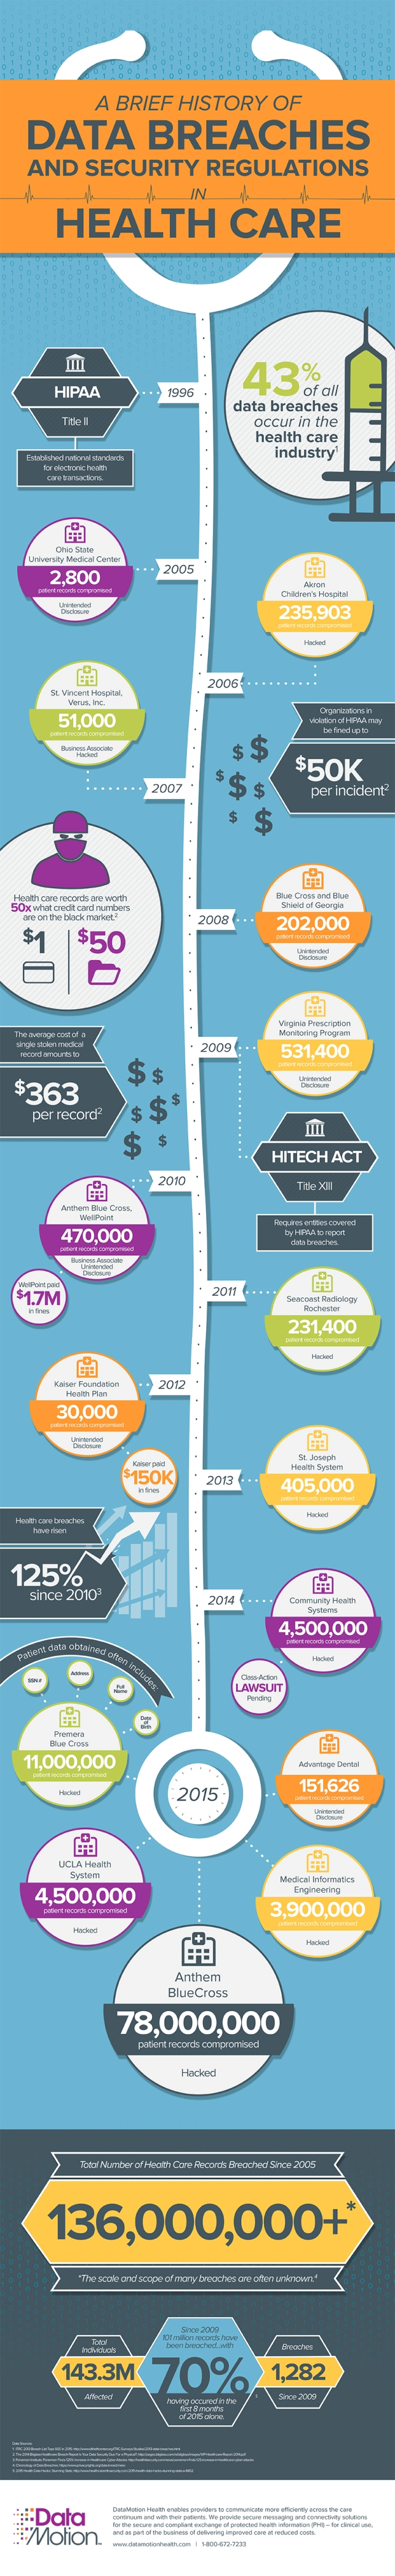 History of Health Care Data Breaches